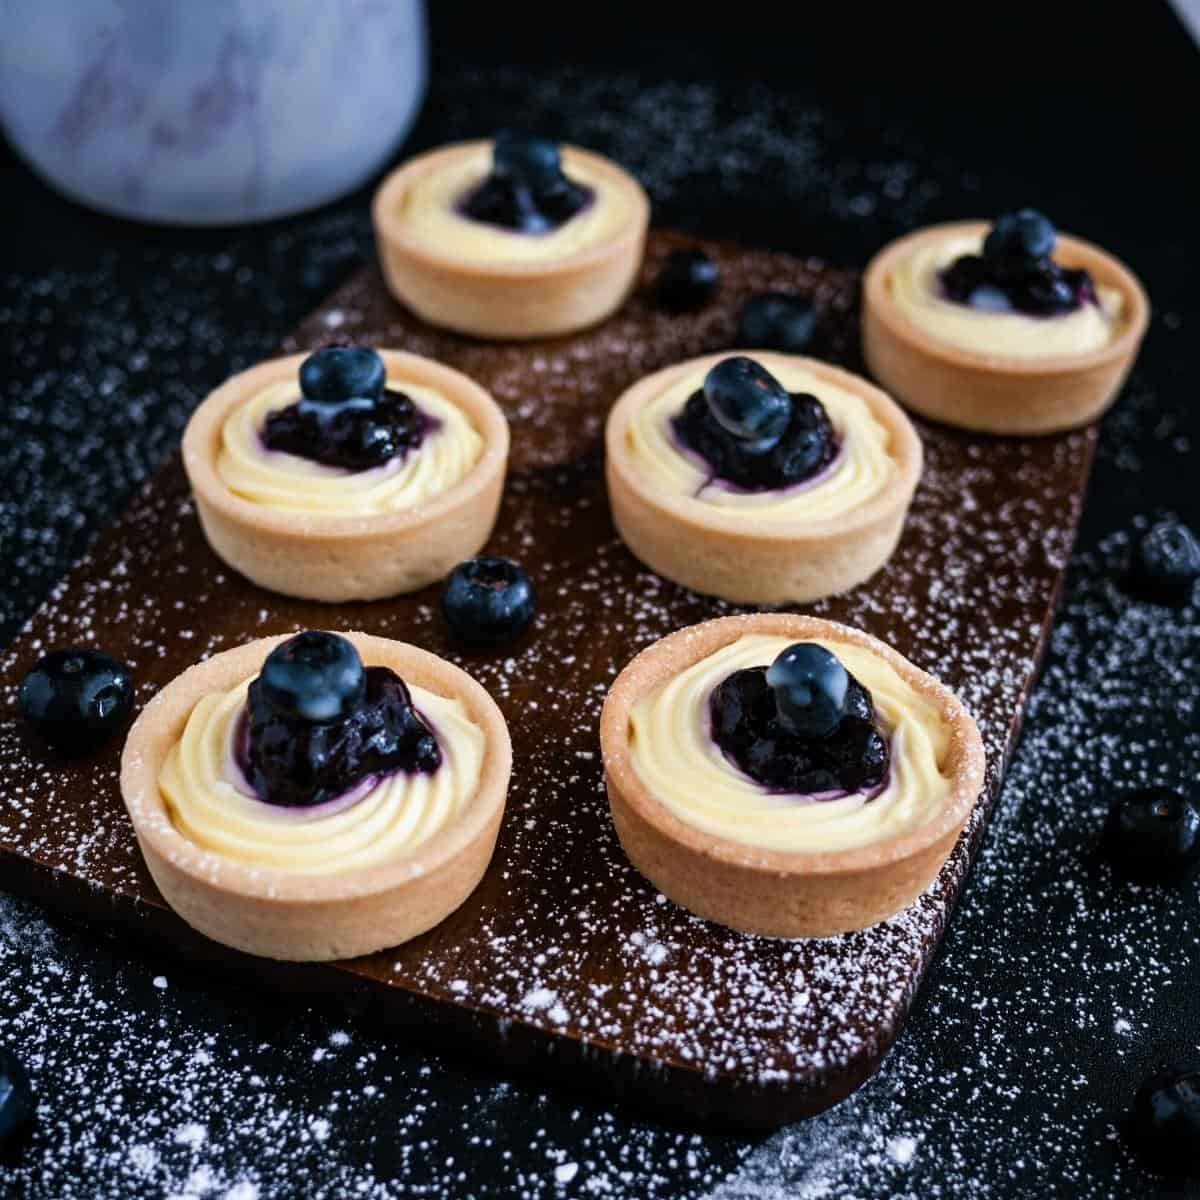 A wooden board with tartlets.